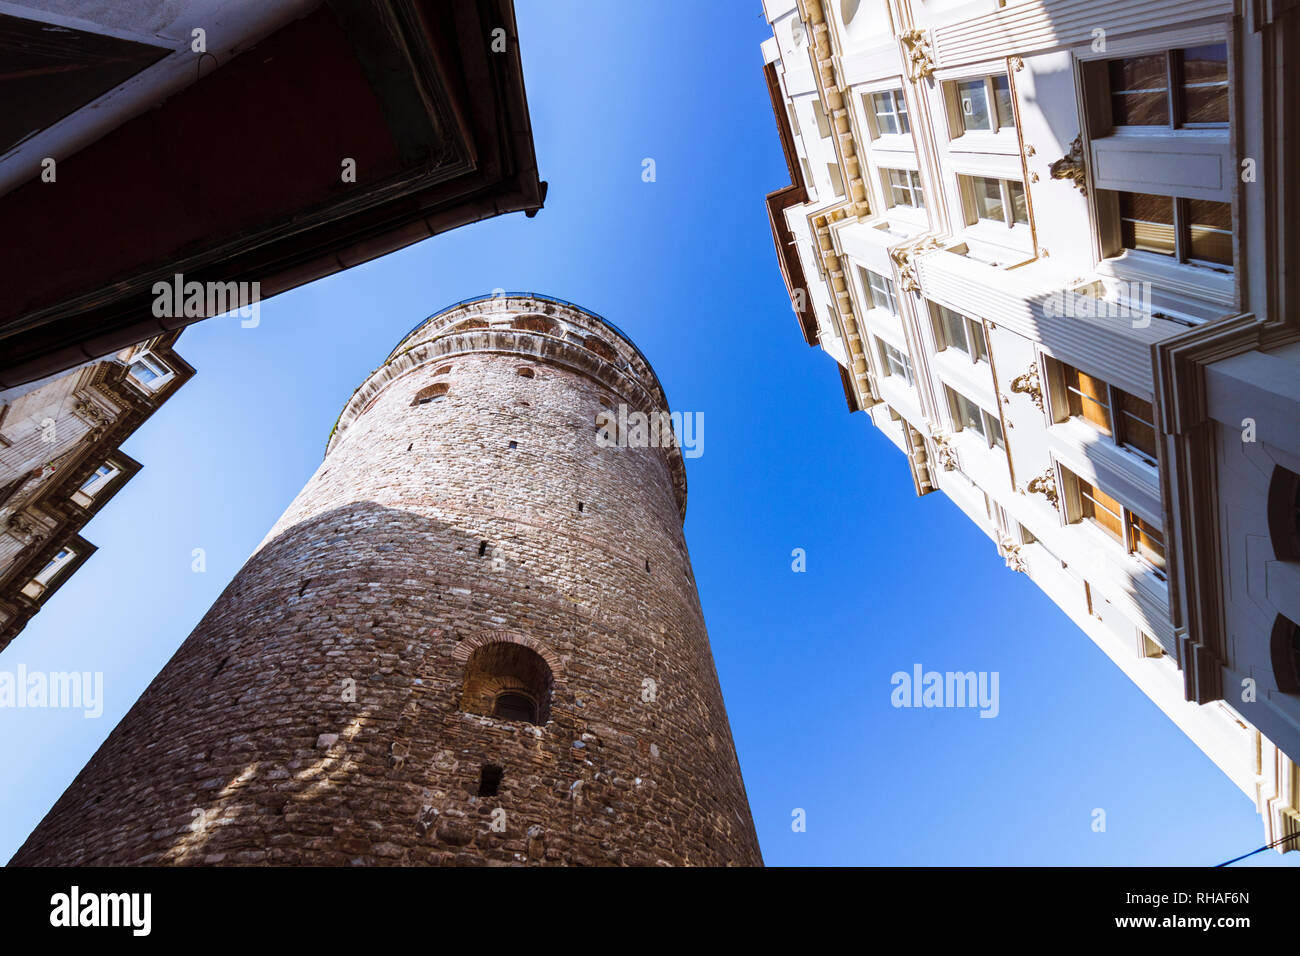 Istanbul, Turkey : View of the Genoese built Galata Tower (1348) in the historic Galata (Karaköy) quarter within the Beyoğlu (Pera) district. - Stock Image